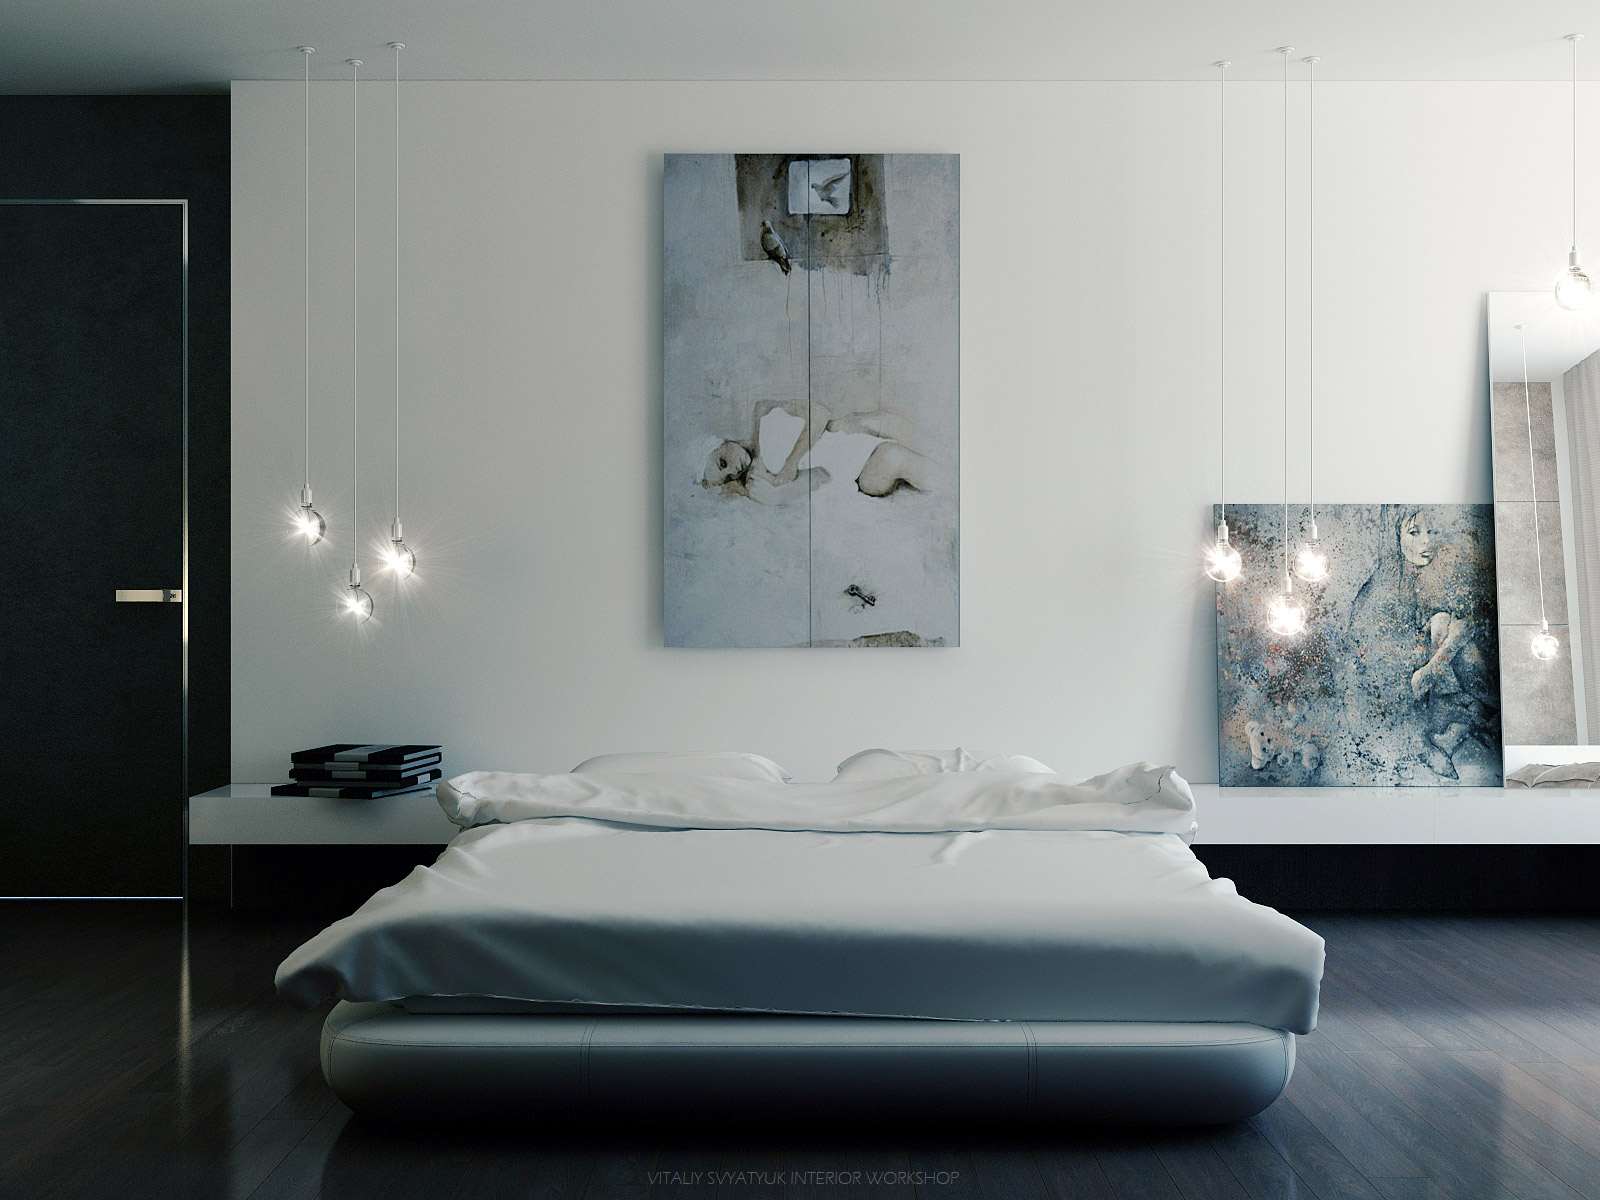 Modern art vitaly svyatyuk cool art cool pallete bedroom for Cool designs for bedroom